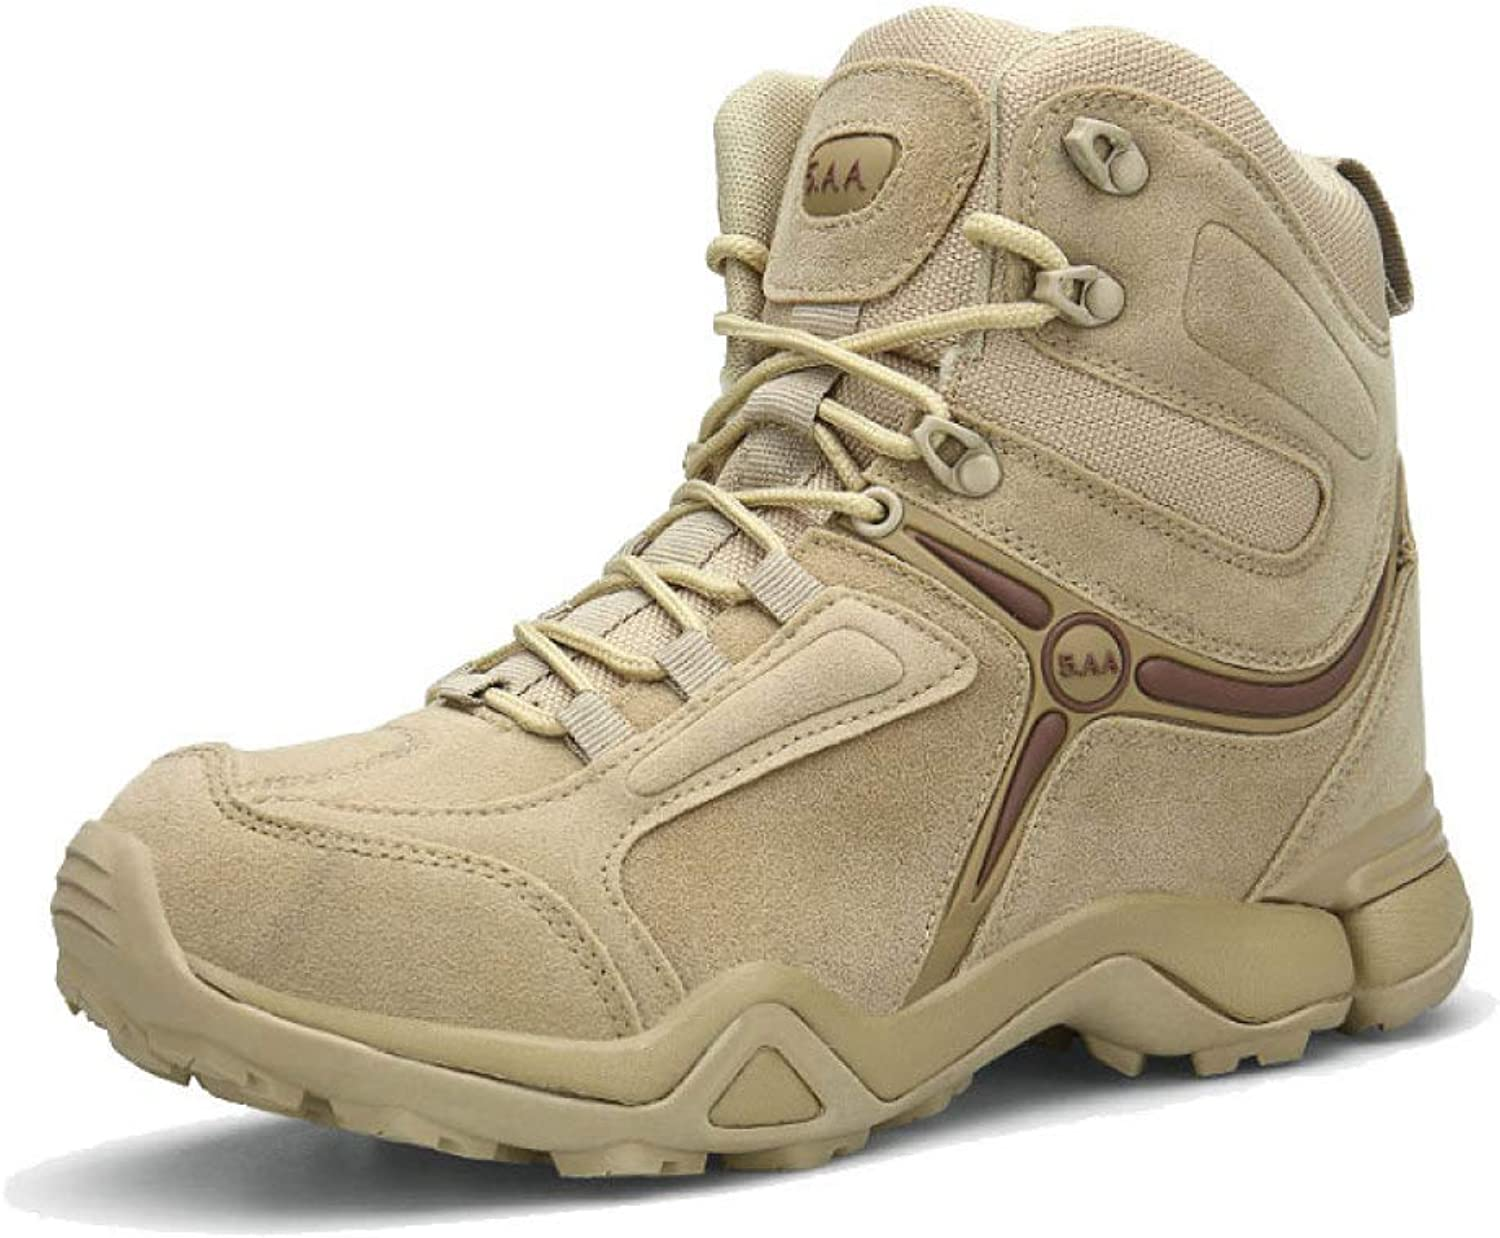 ASJUNQ Men's Outdoor Military Boots Wear Hiking shoes Martin Boots Non-Slip Desert Boots Hiking Boots